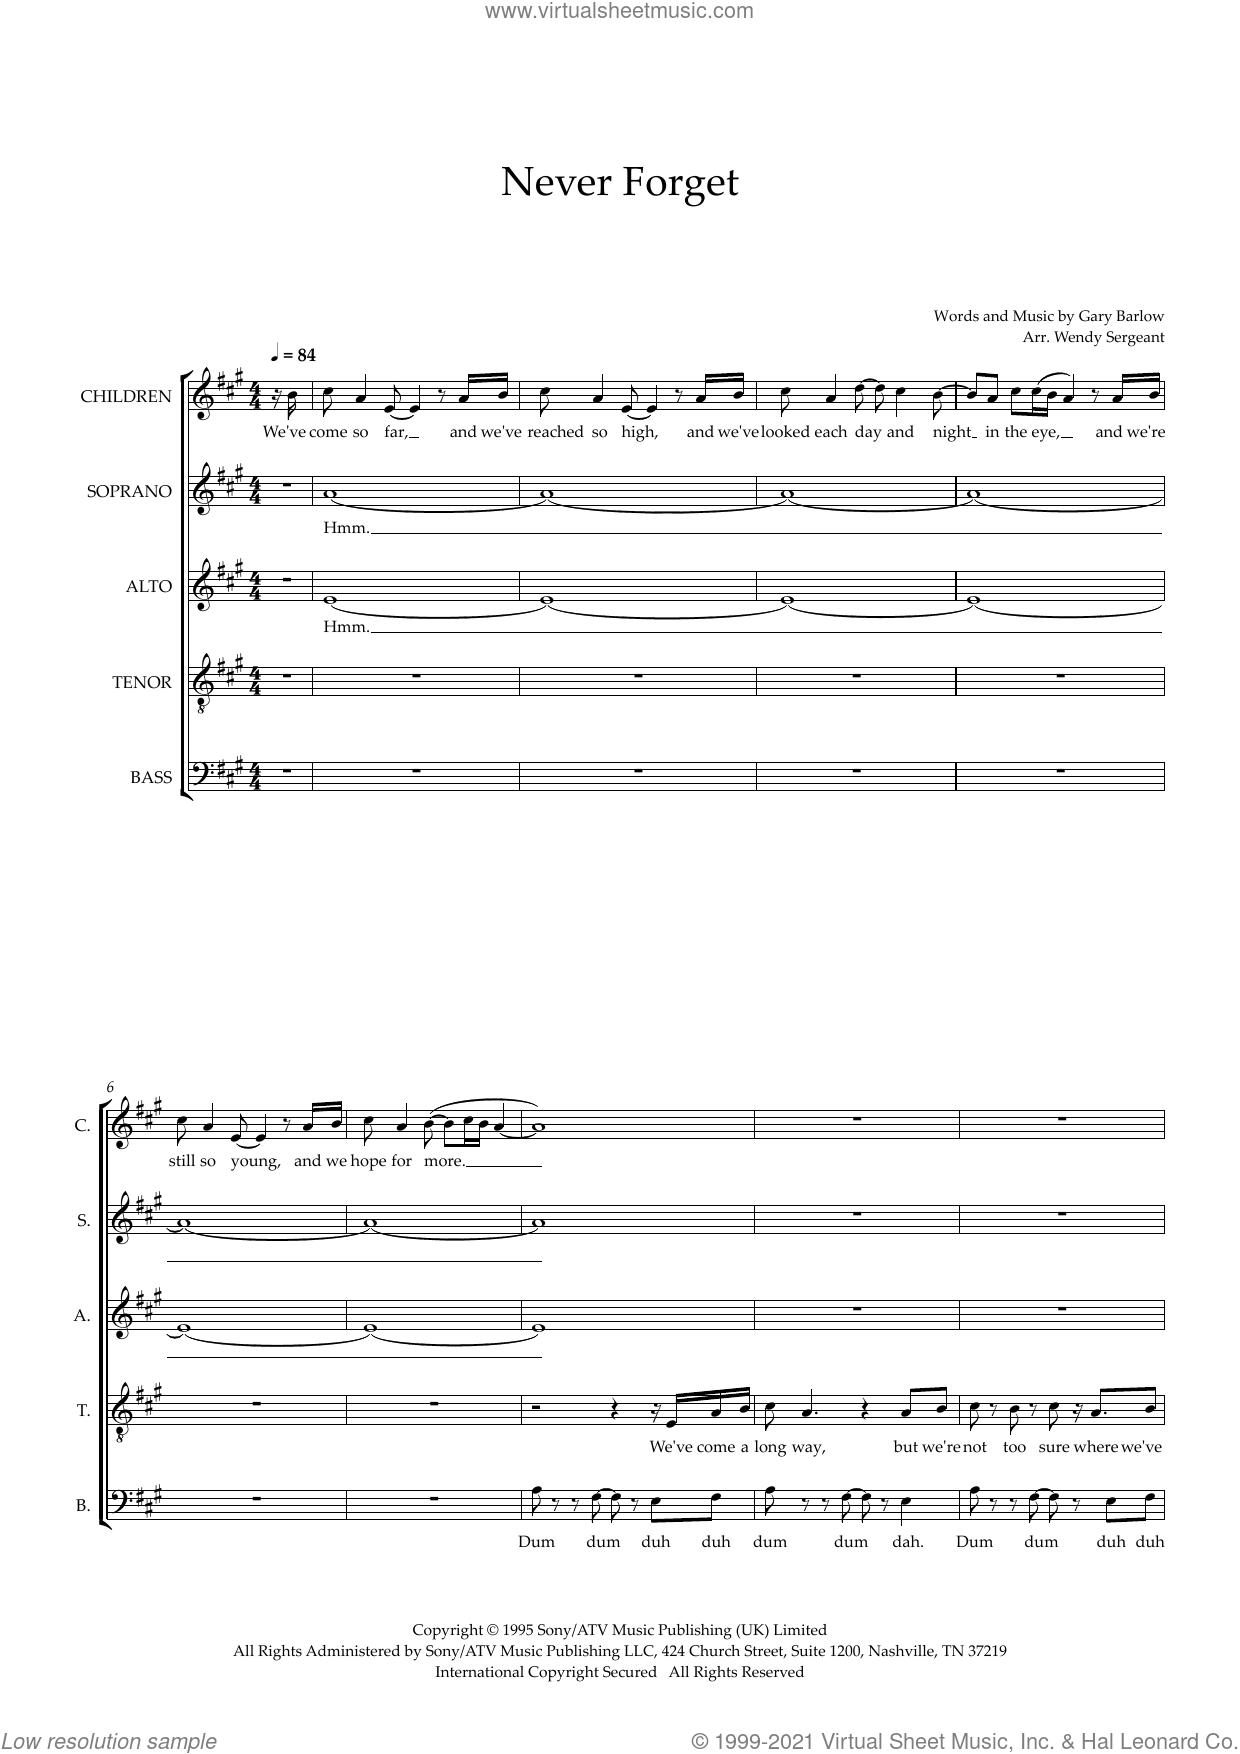 Never Forget (arr. Wendy Sergeant) sheet music for choir (SSATB) by Take That, Wendy Sergeant and Gary Barlow, intermediate skill level